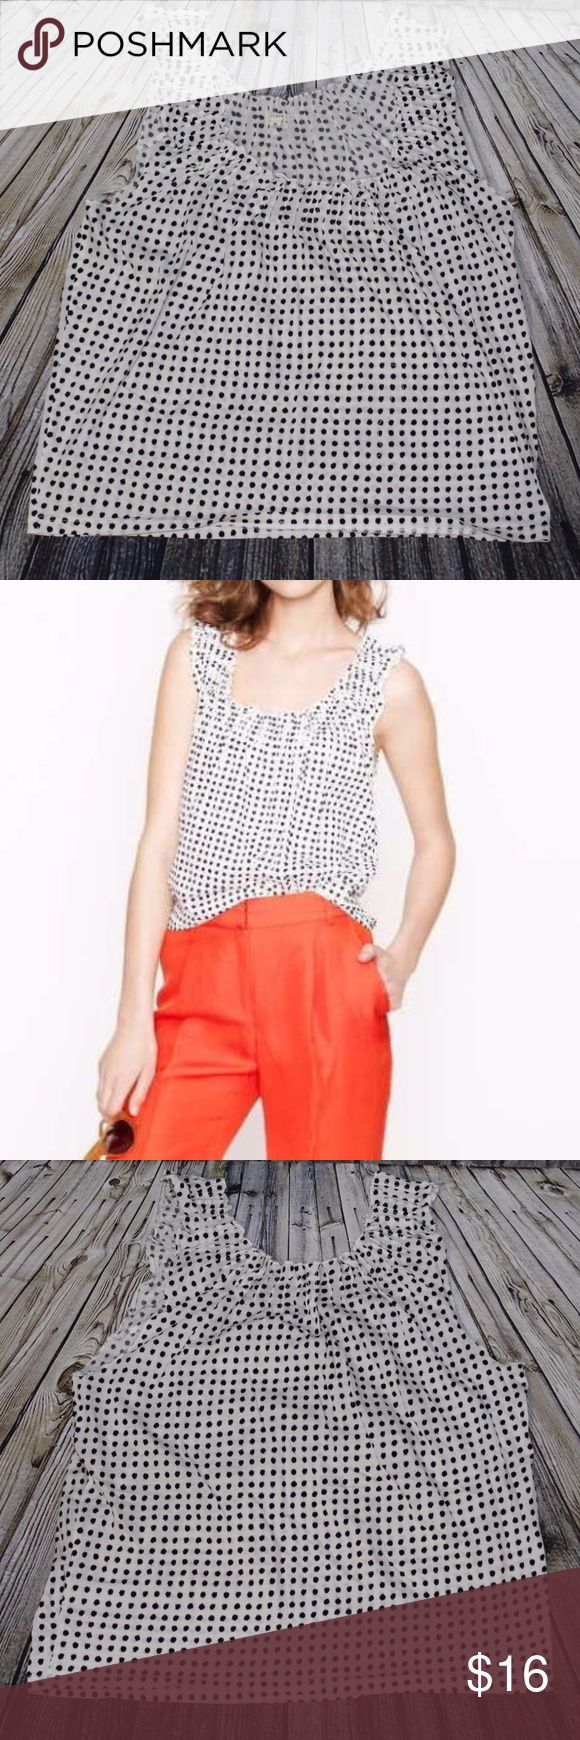 J. Crew M Smocked Top Dapple Polka Dot Tank J. Crew Smocked Top in Dapple Dot Size M 100% Cotton MEASUREMENTS Length: 22 inches Bust: 40 inches Please contact me with any questions. Thanks! J. Crew Tops Tank Tops